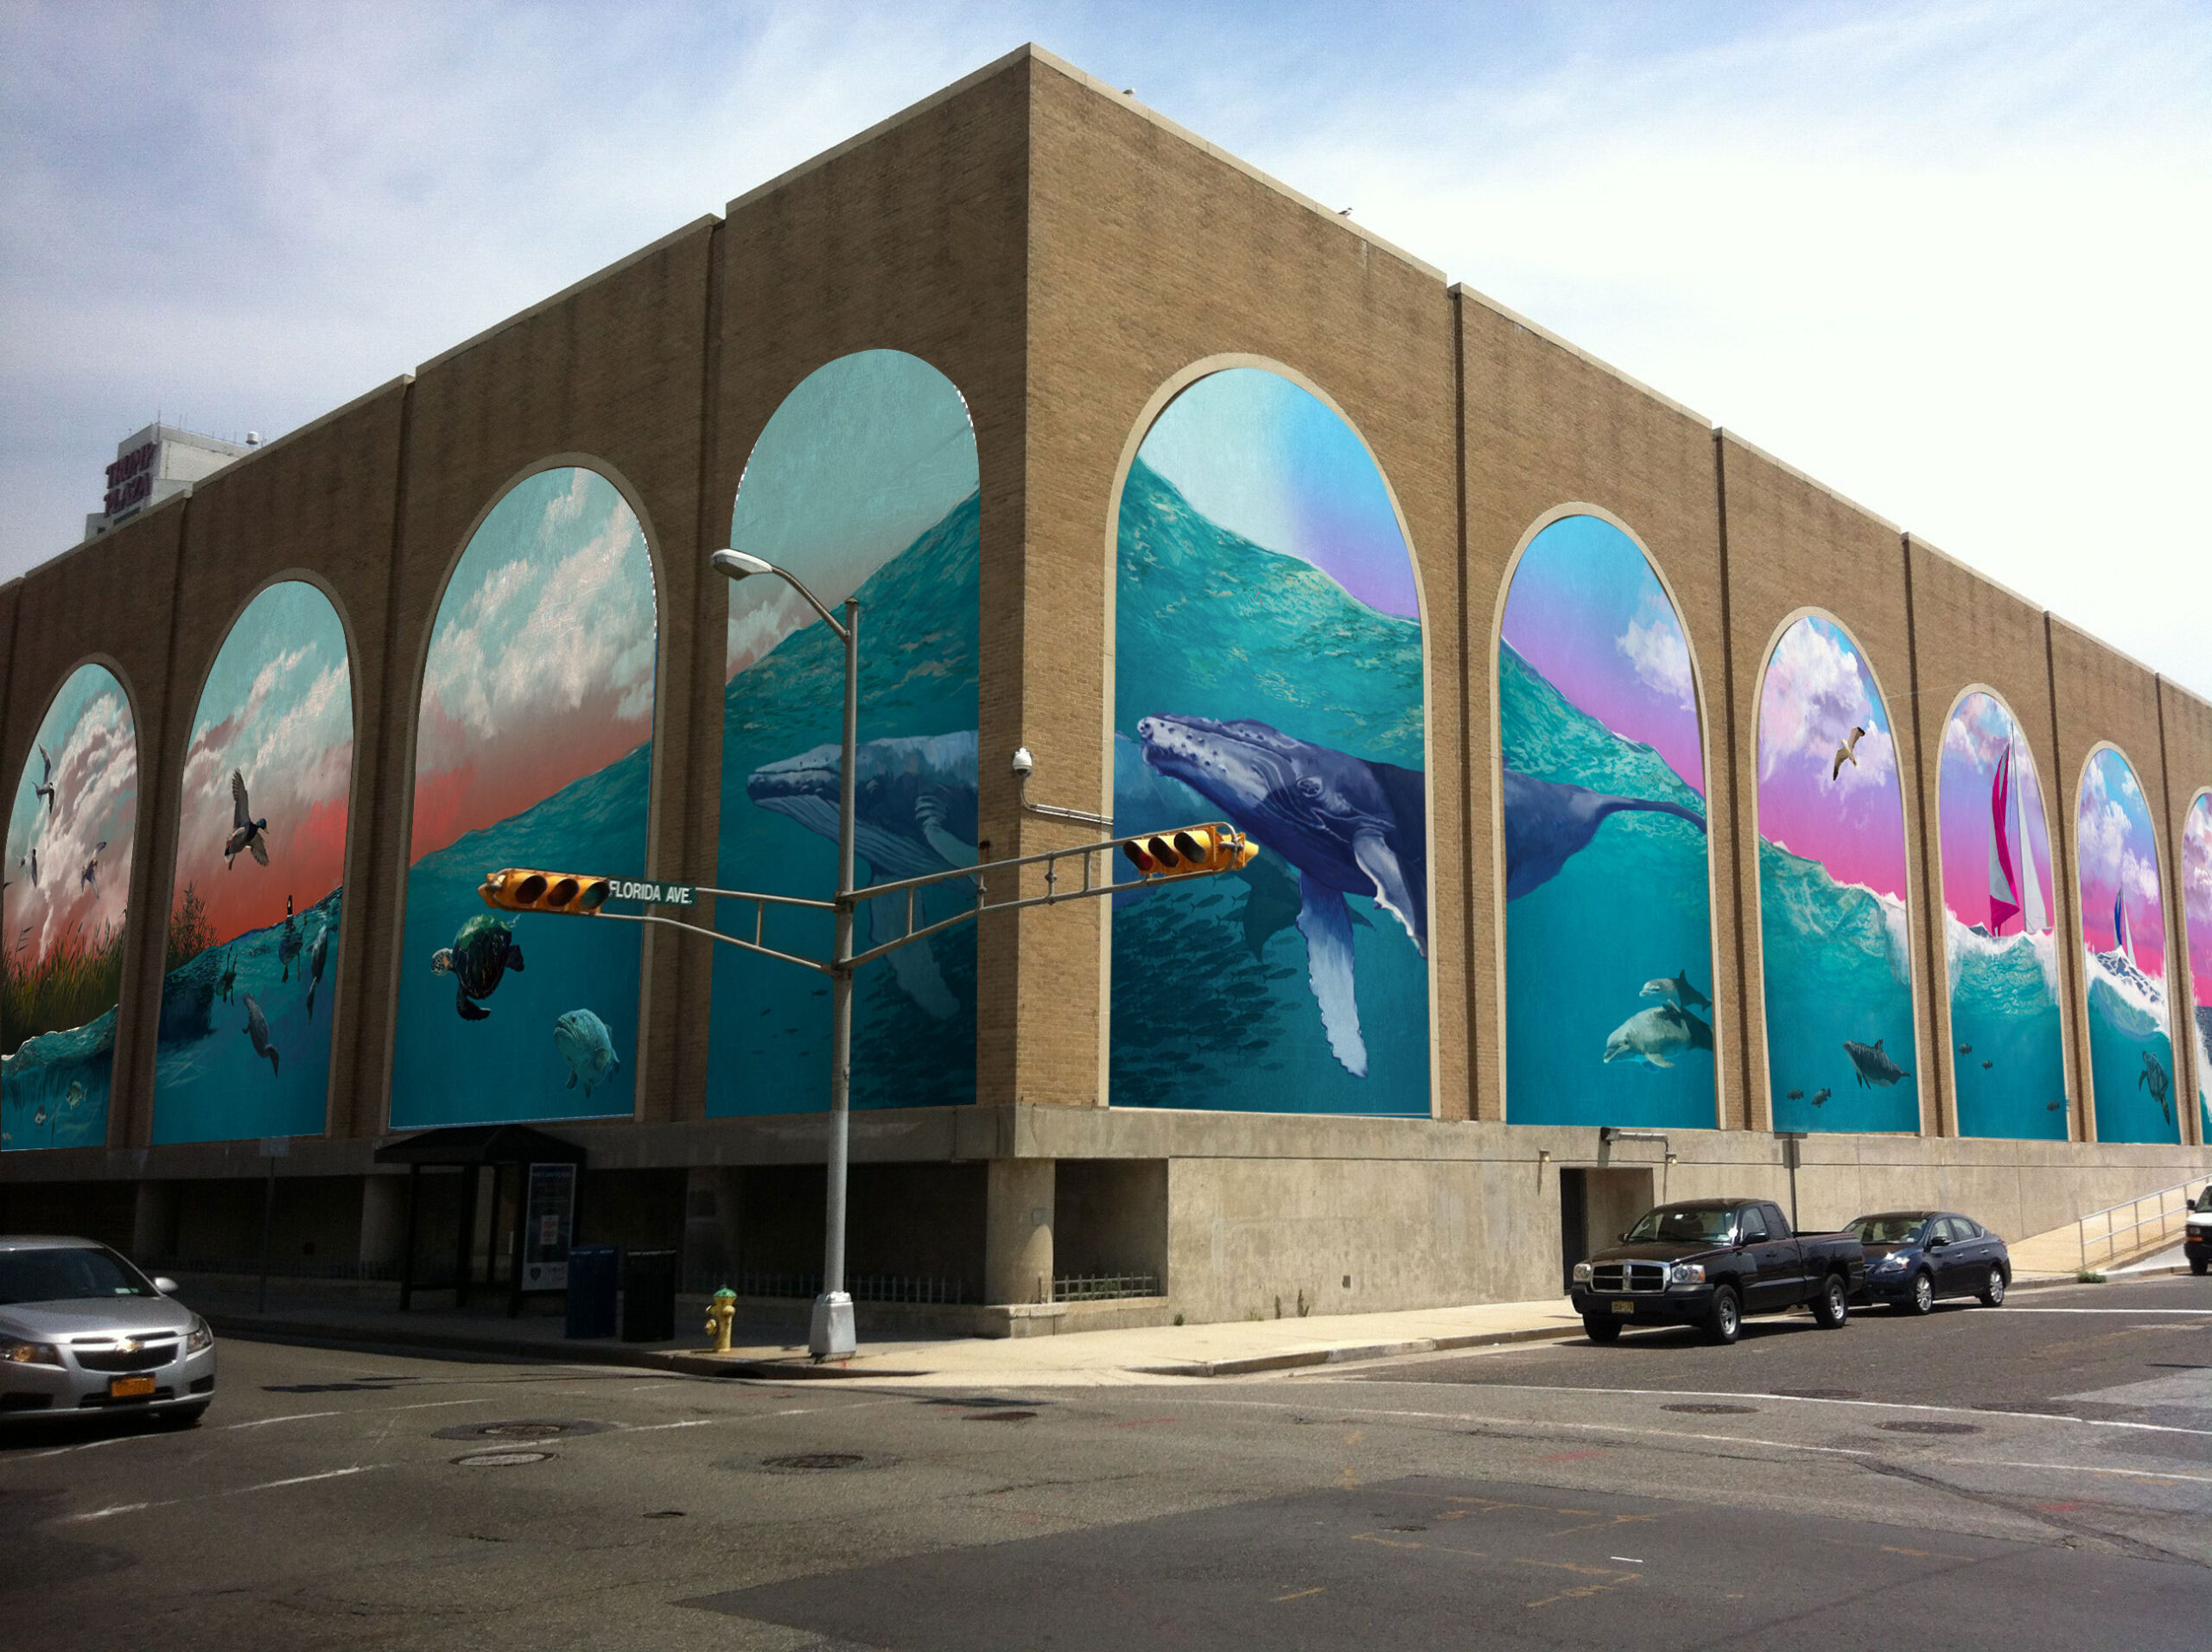 Teal and pink mural on the west side of Boardwalk Hall in Atlantic City, NJ